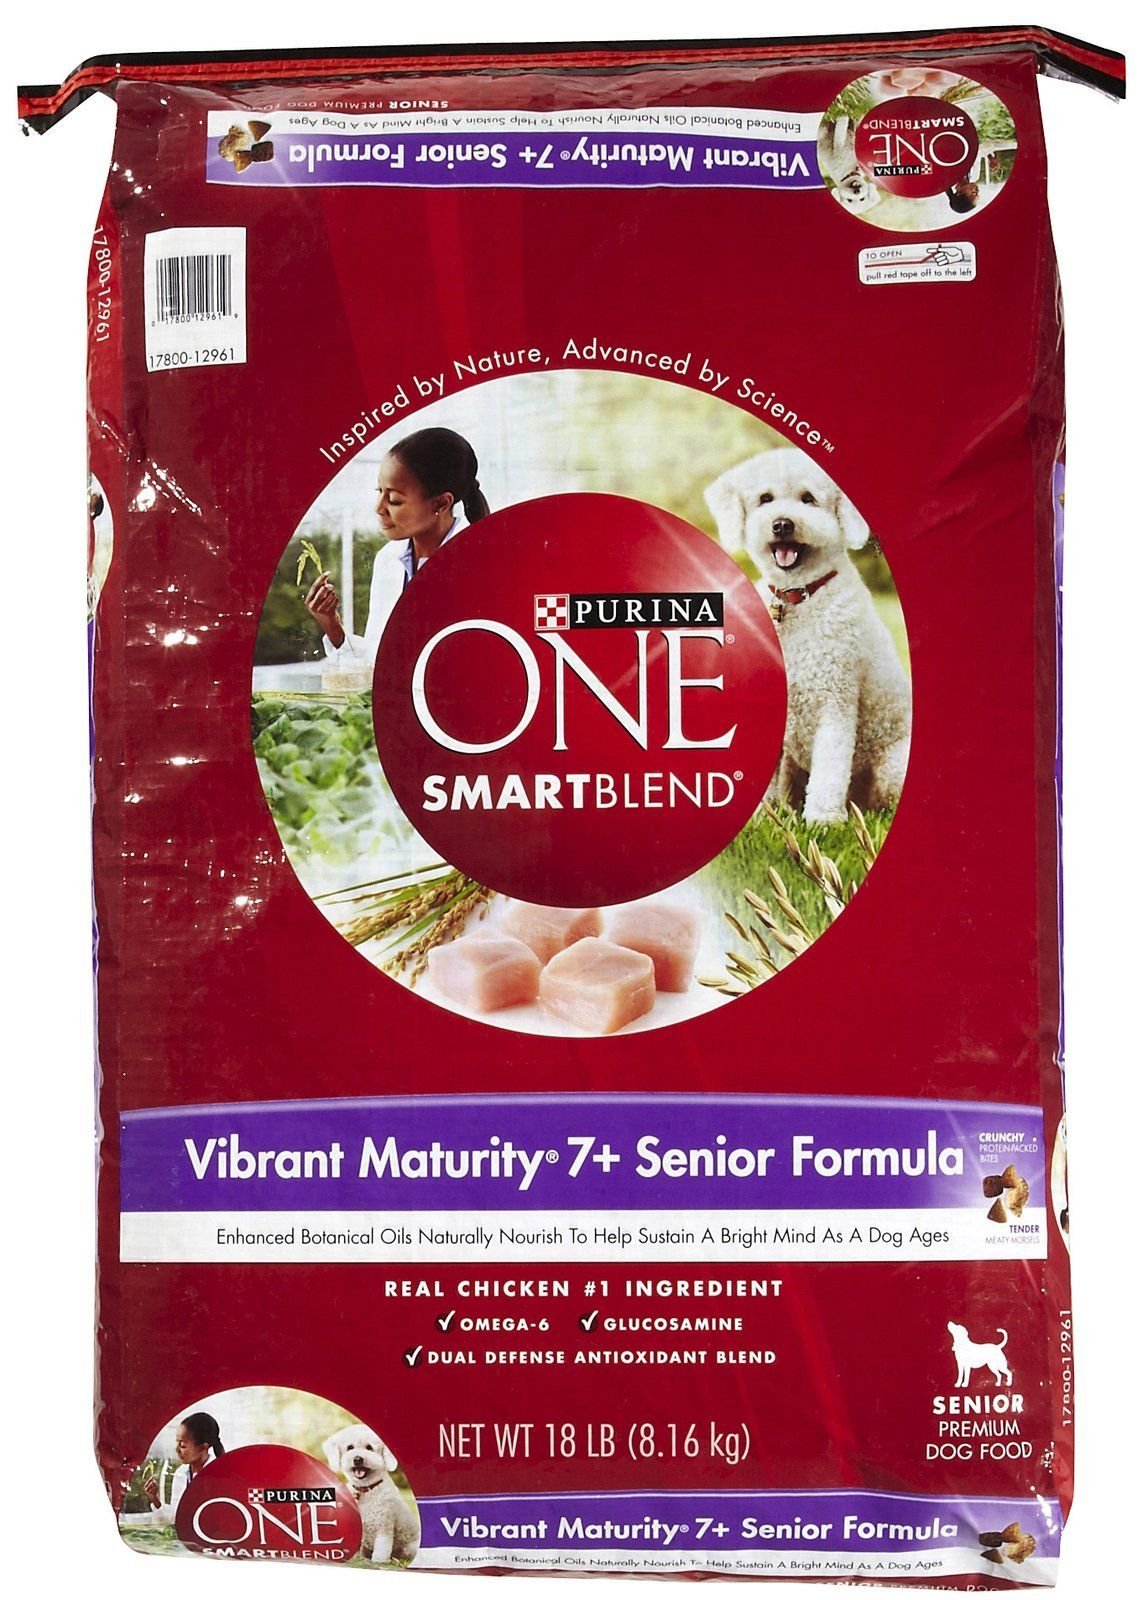 Purina One Senior Dry Dog Food 18lb Learn More By Visiting The